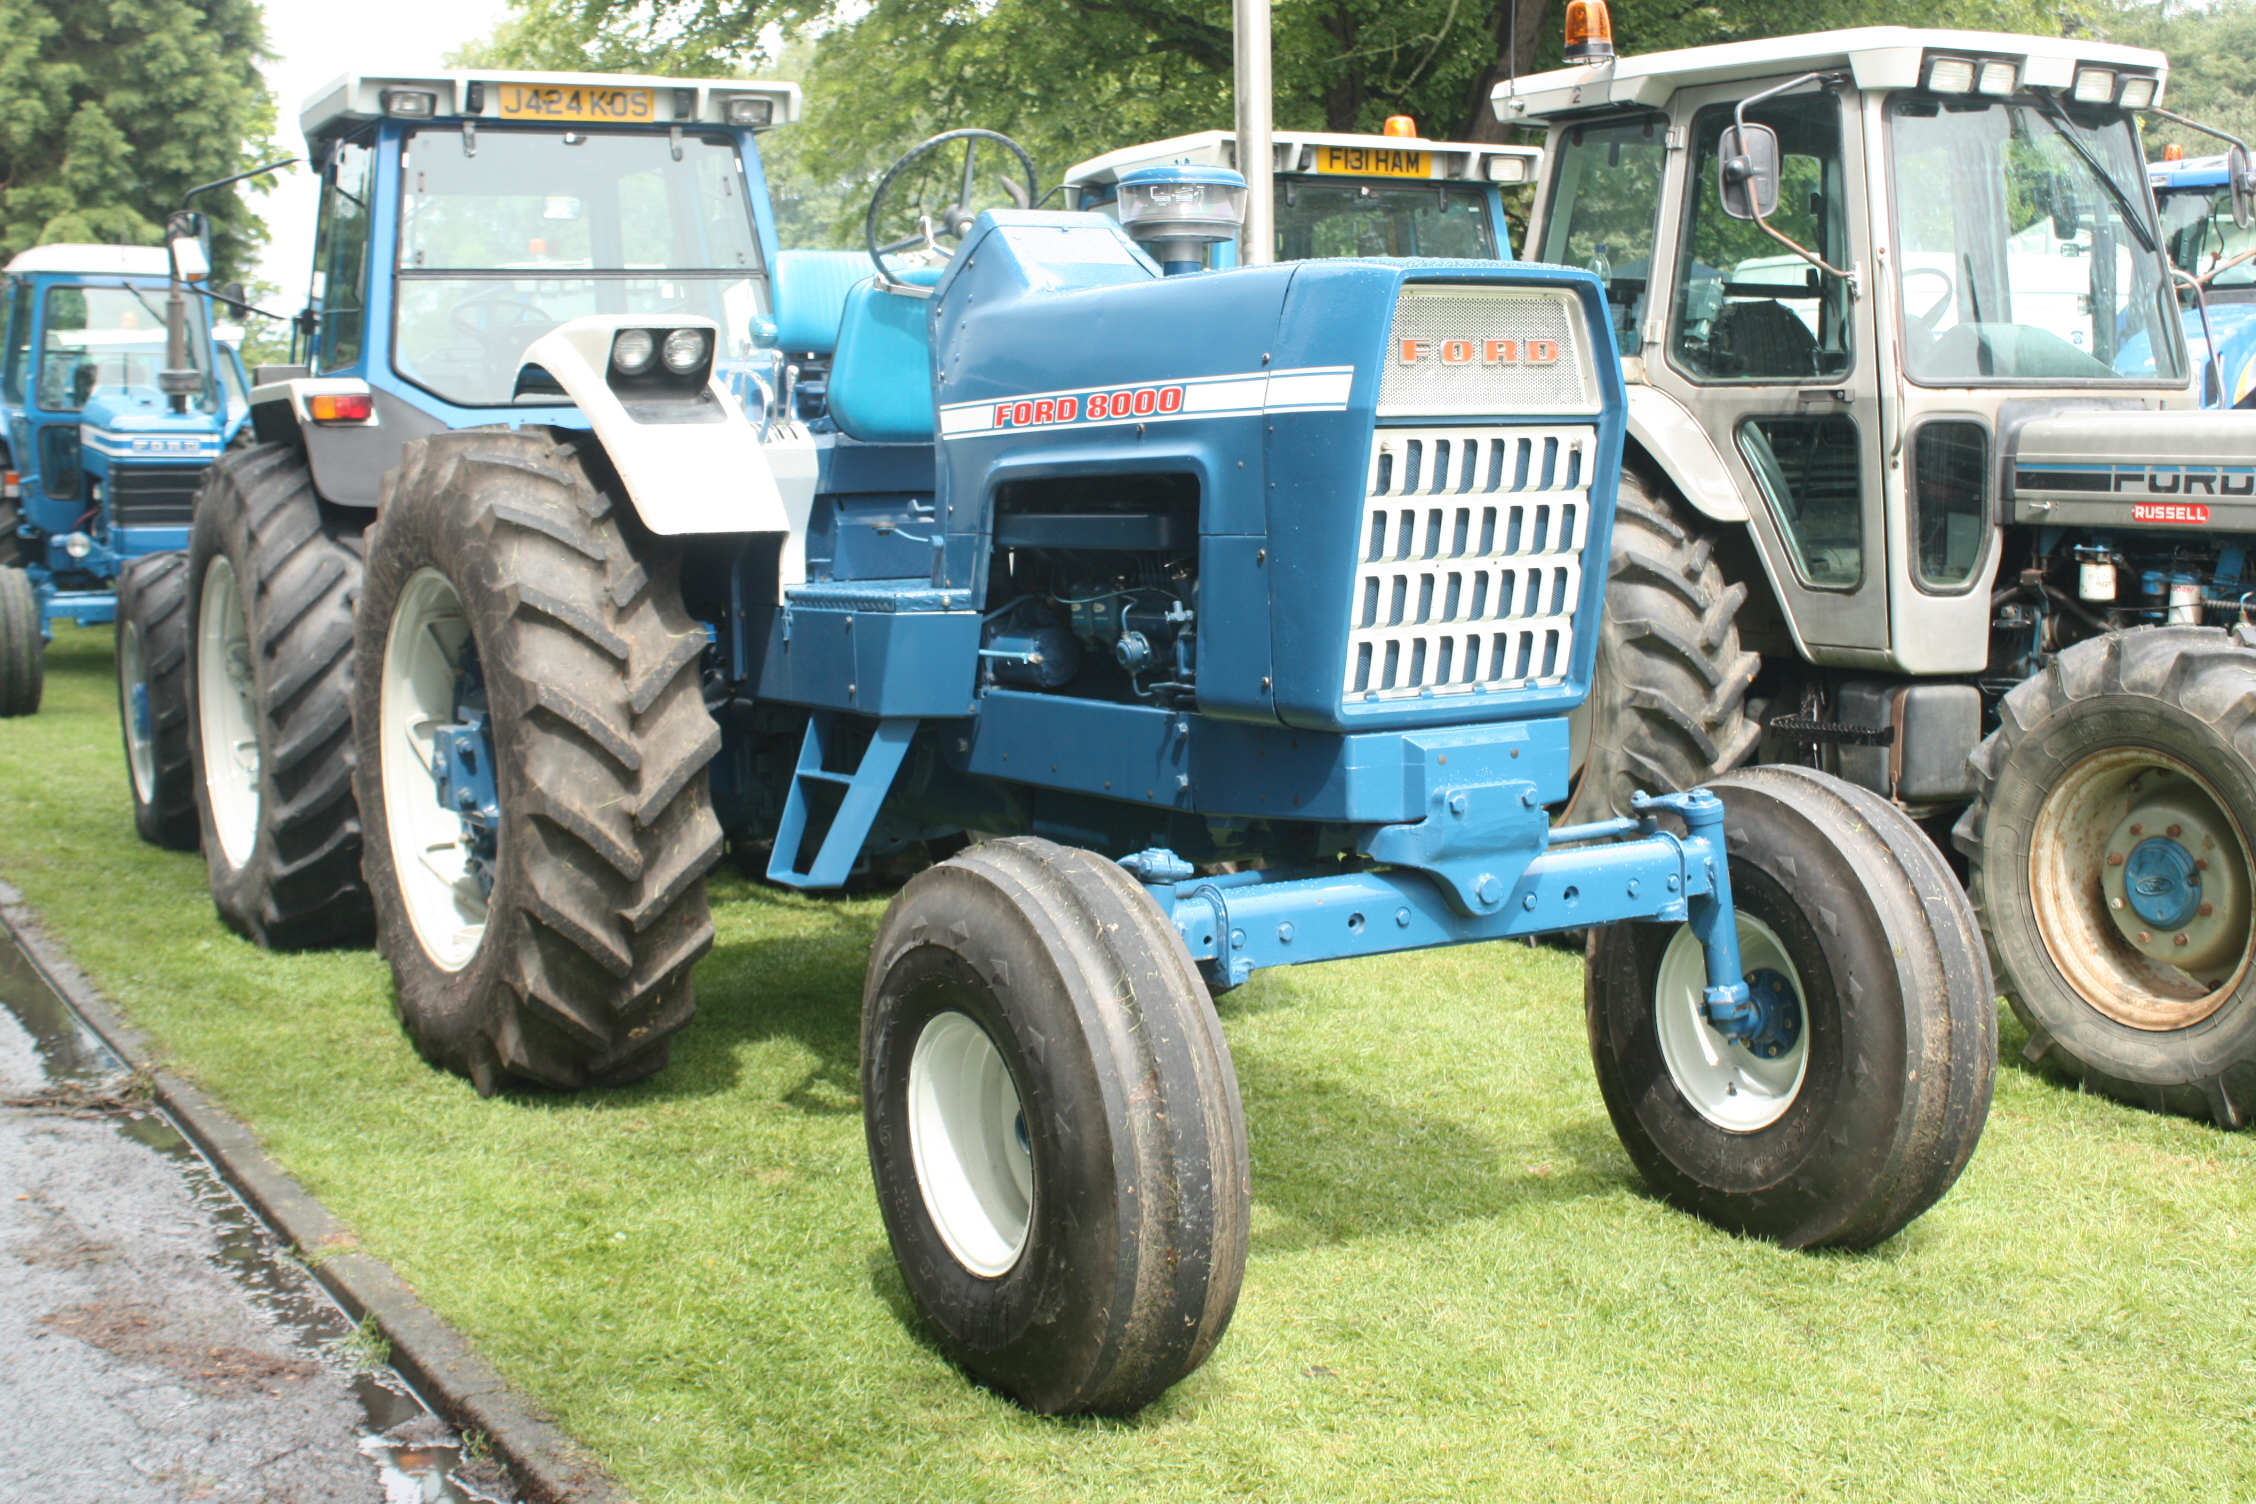 Ford 8000 Tractor Diagrams : Ford tractor diagram free engine image for